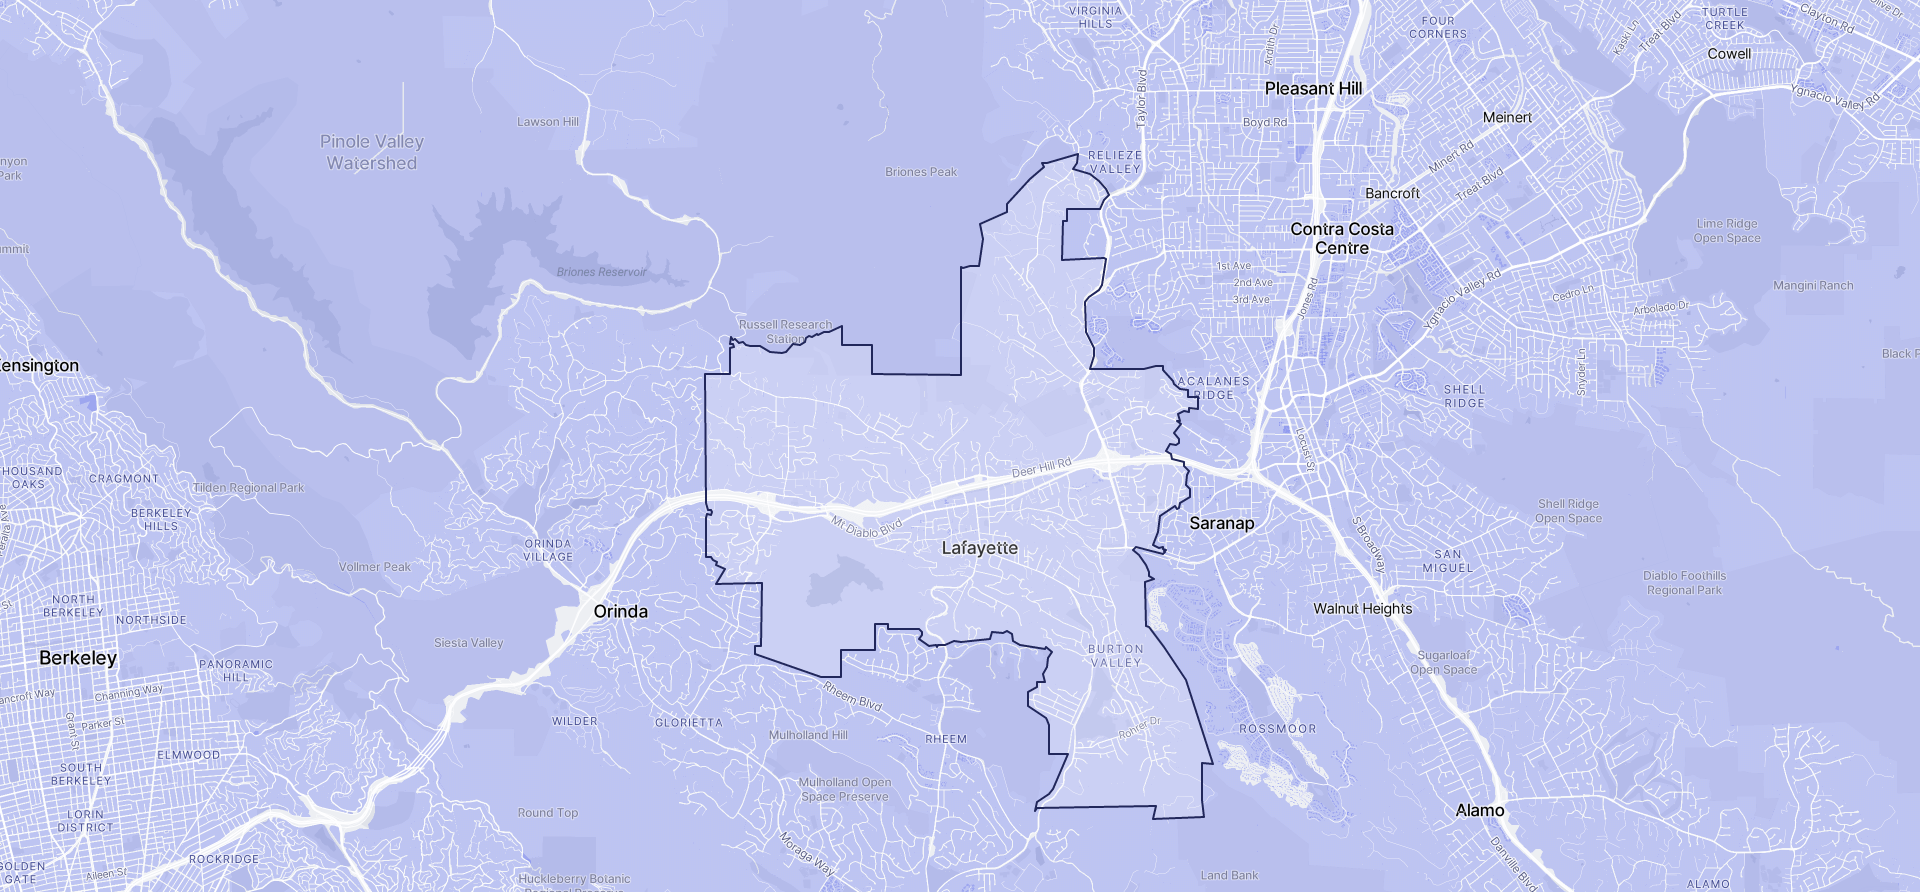 Image of Lafayette boundaries on a map.